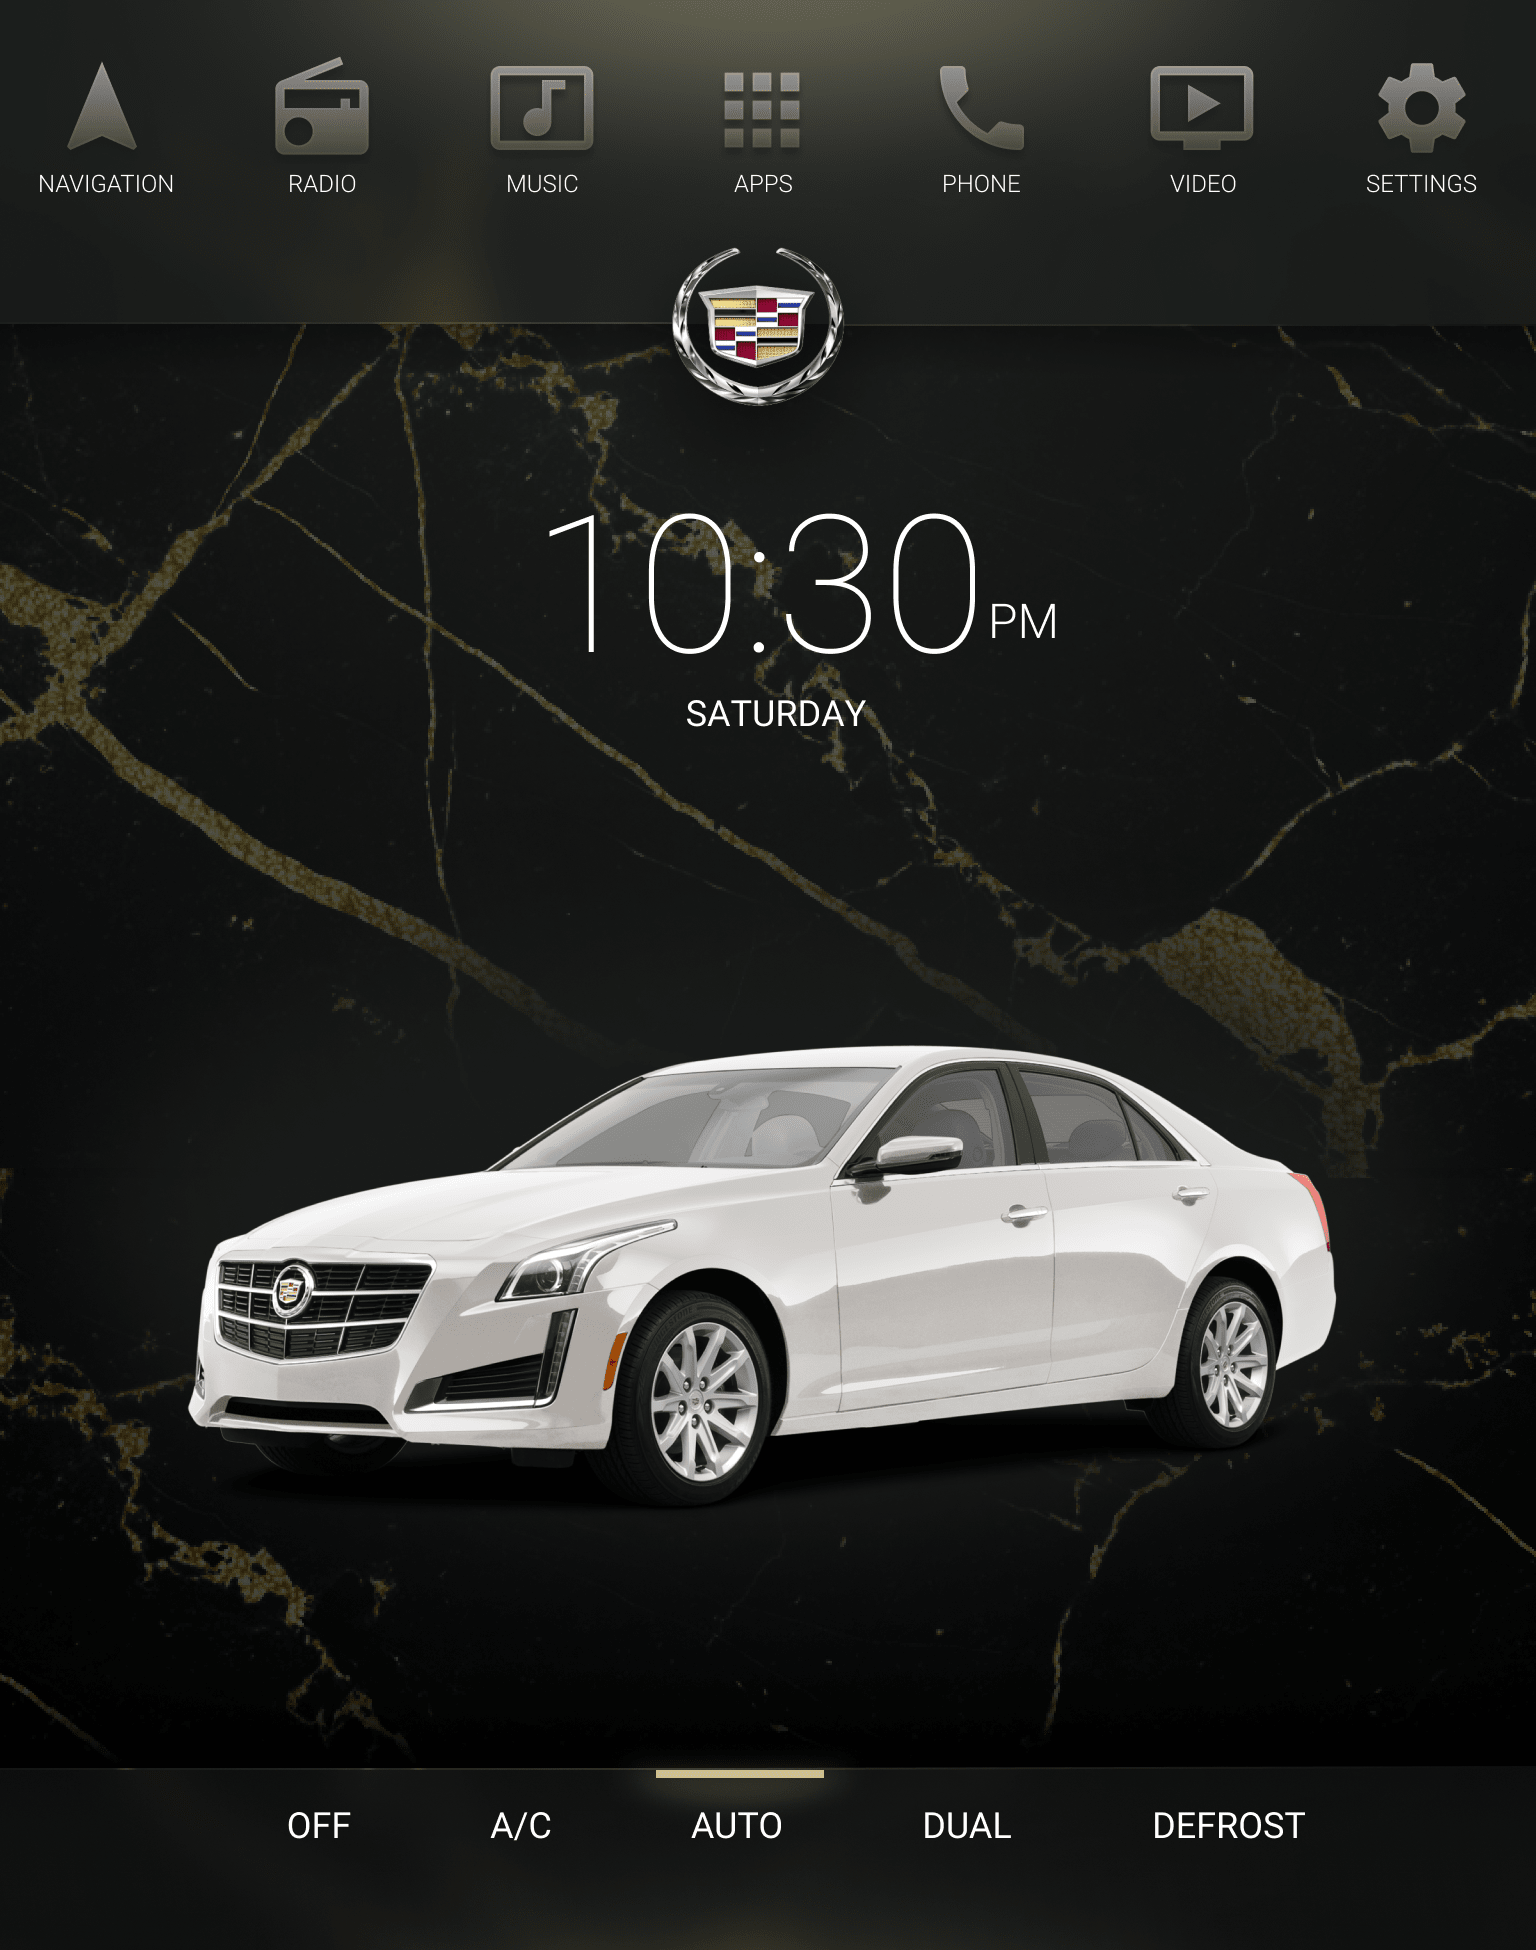 Cadillac Infotainment System—Concept